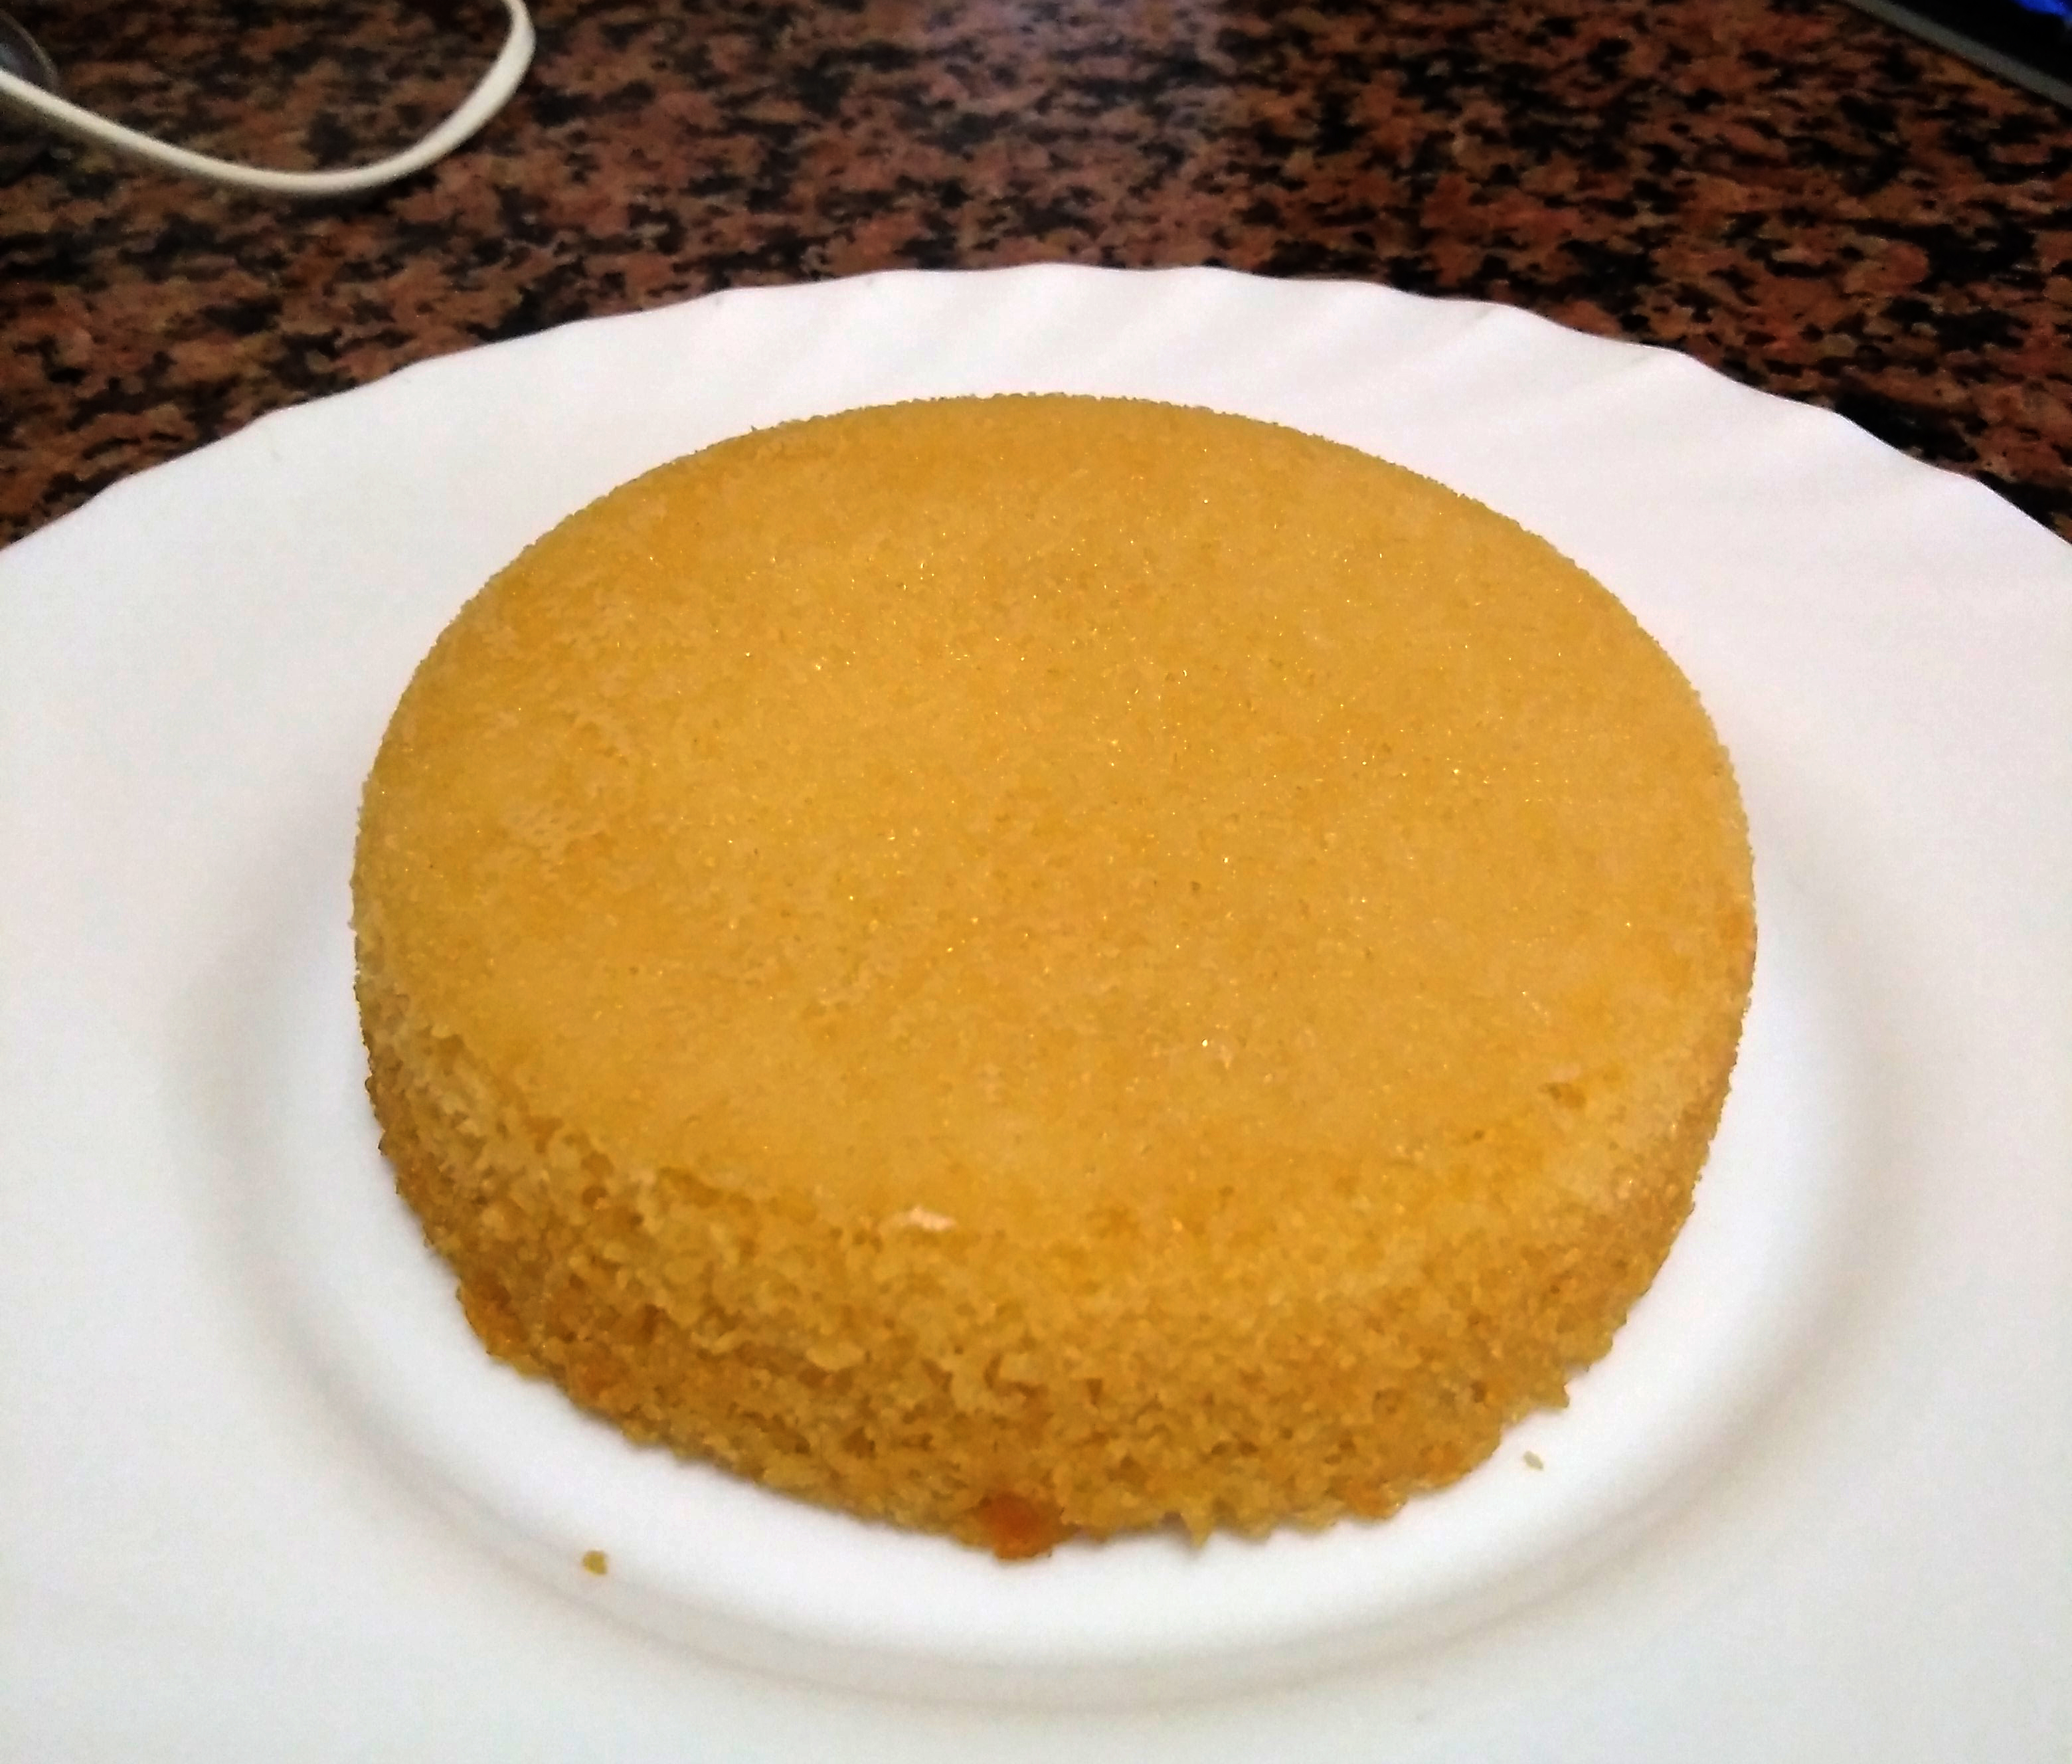 Picture of First Test. Baking a Cake.